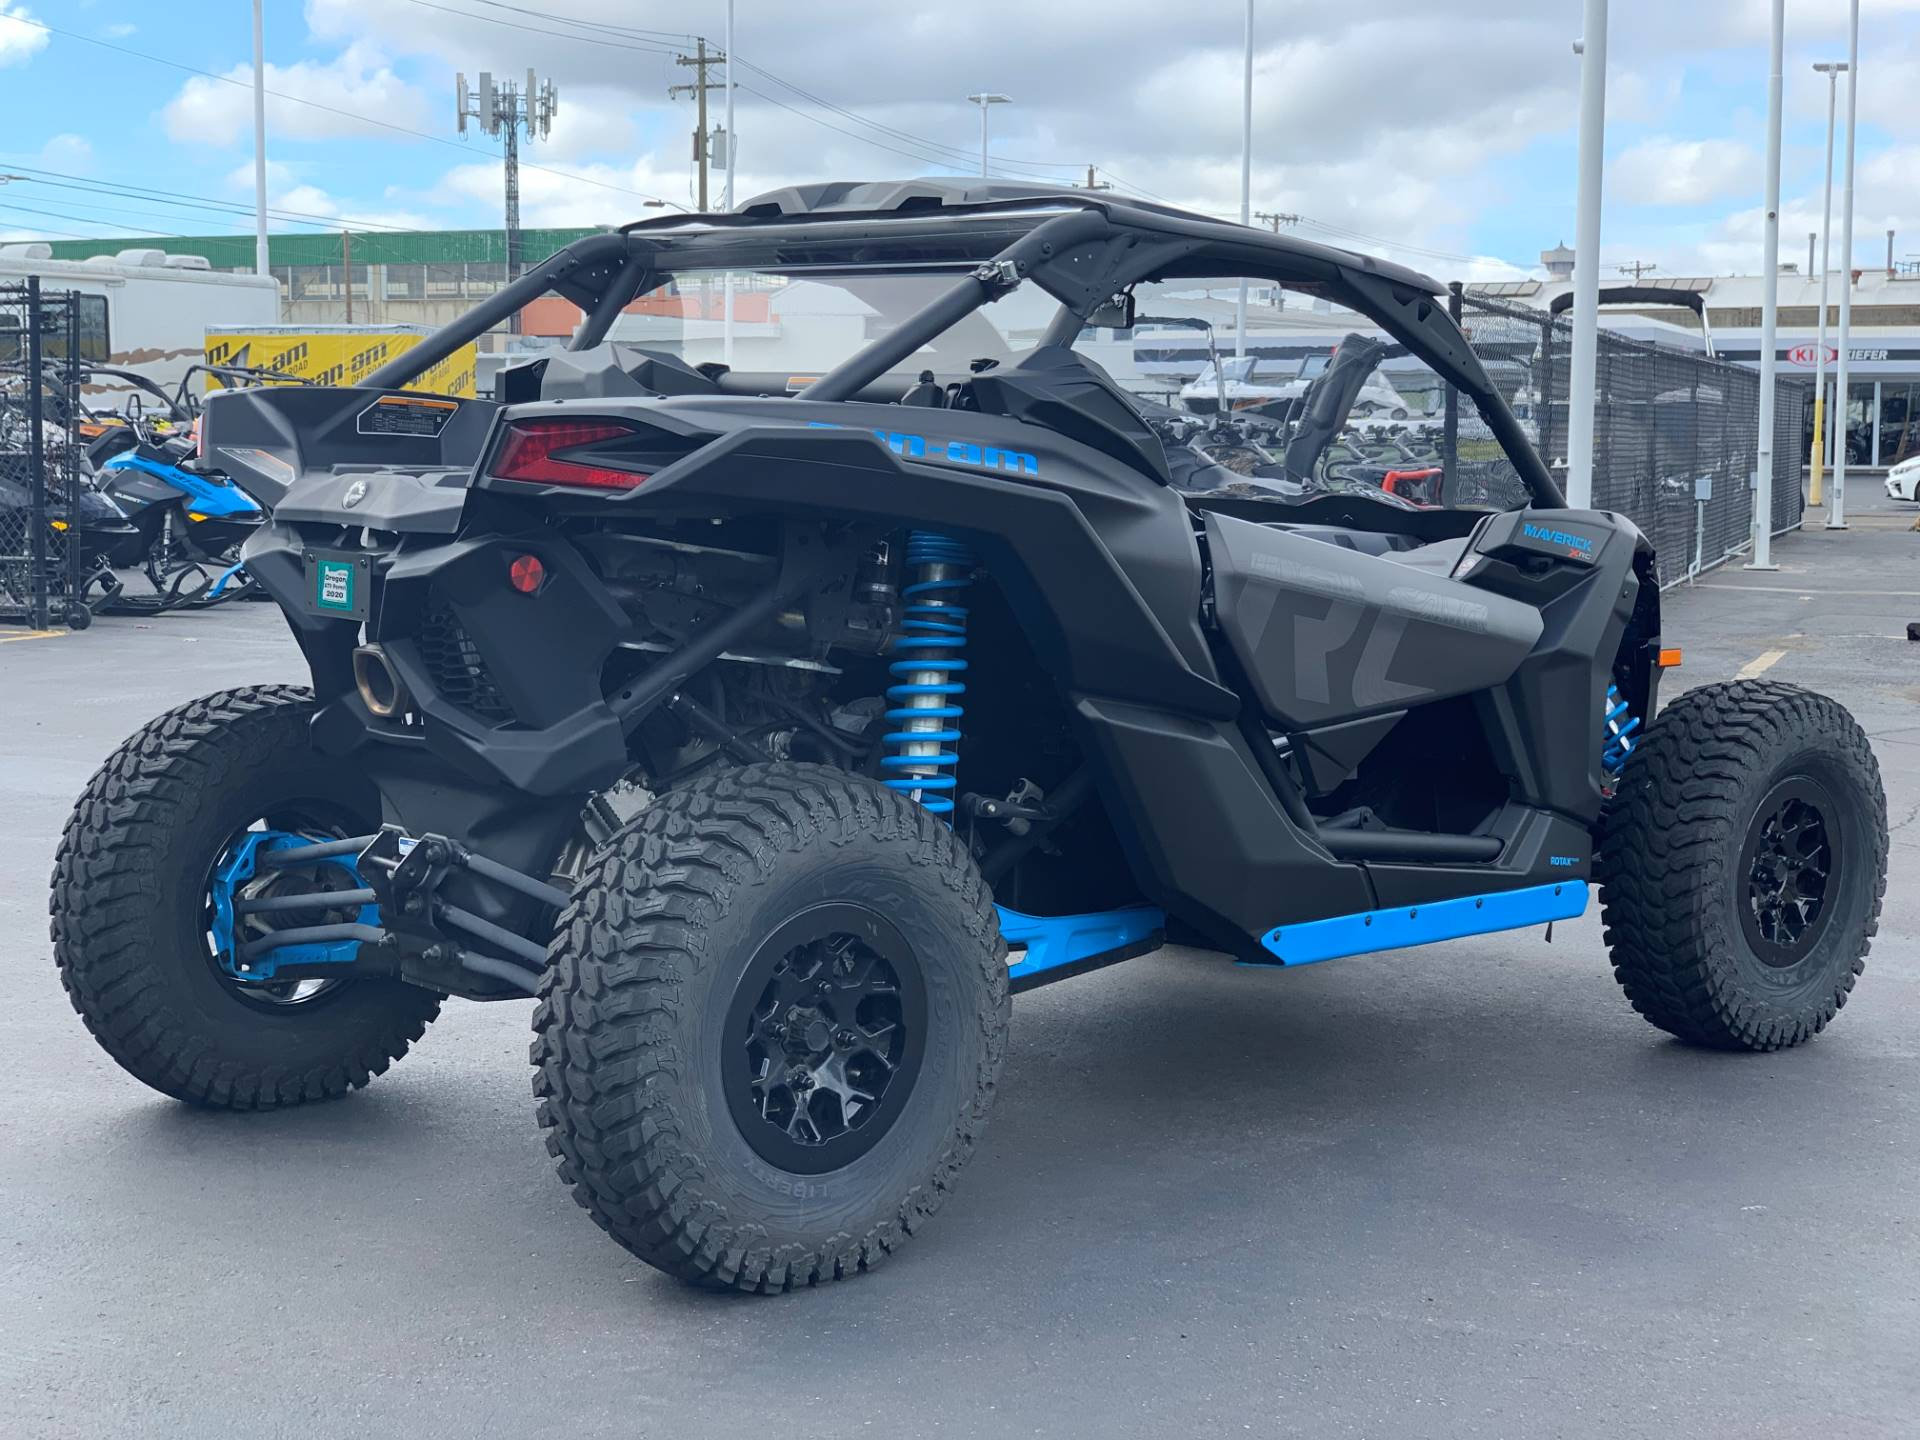 2019 Can-Am Maverick X3 X rc Turbo in Eugene, Oregon - Photo 7